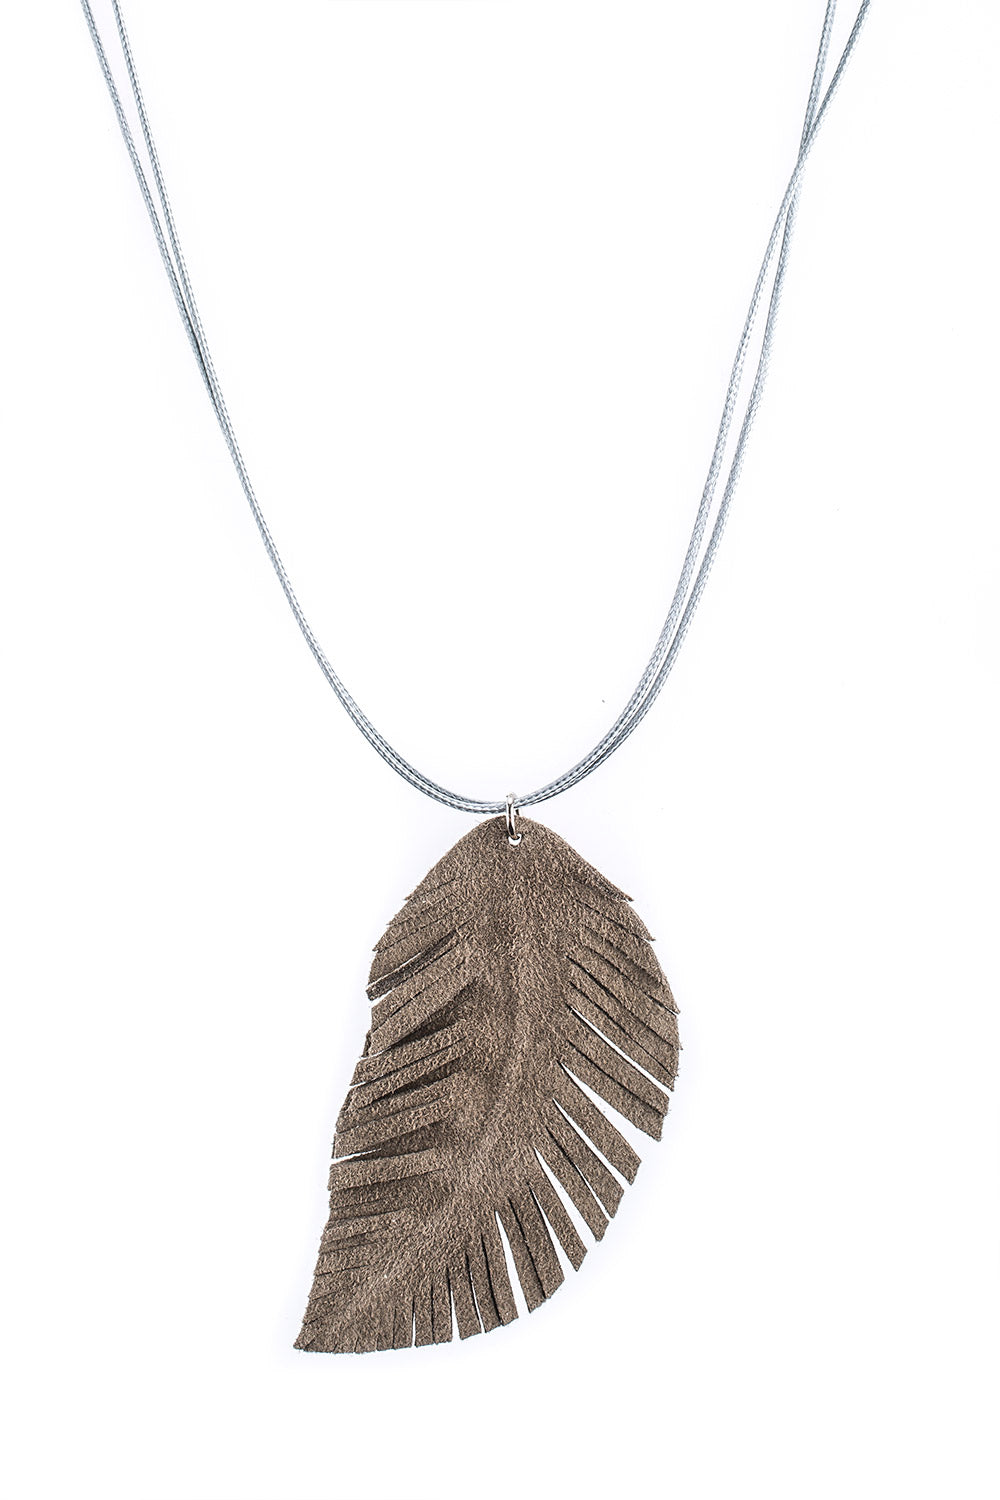 Type 2 Feigned Feather Necklace